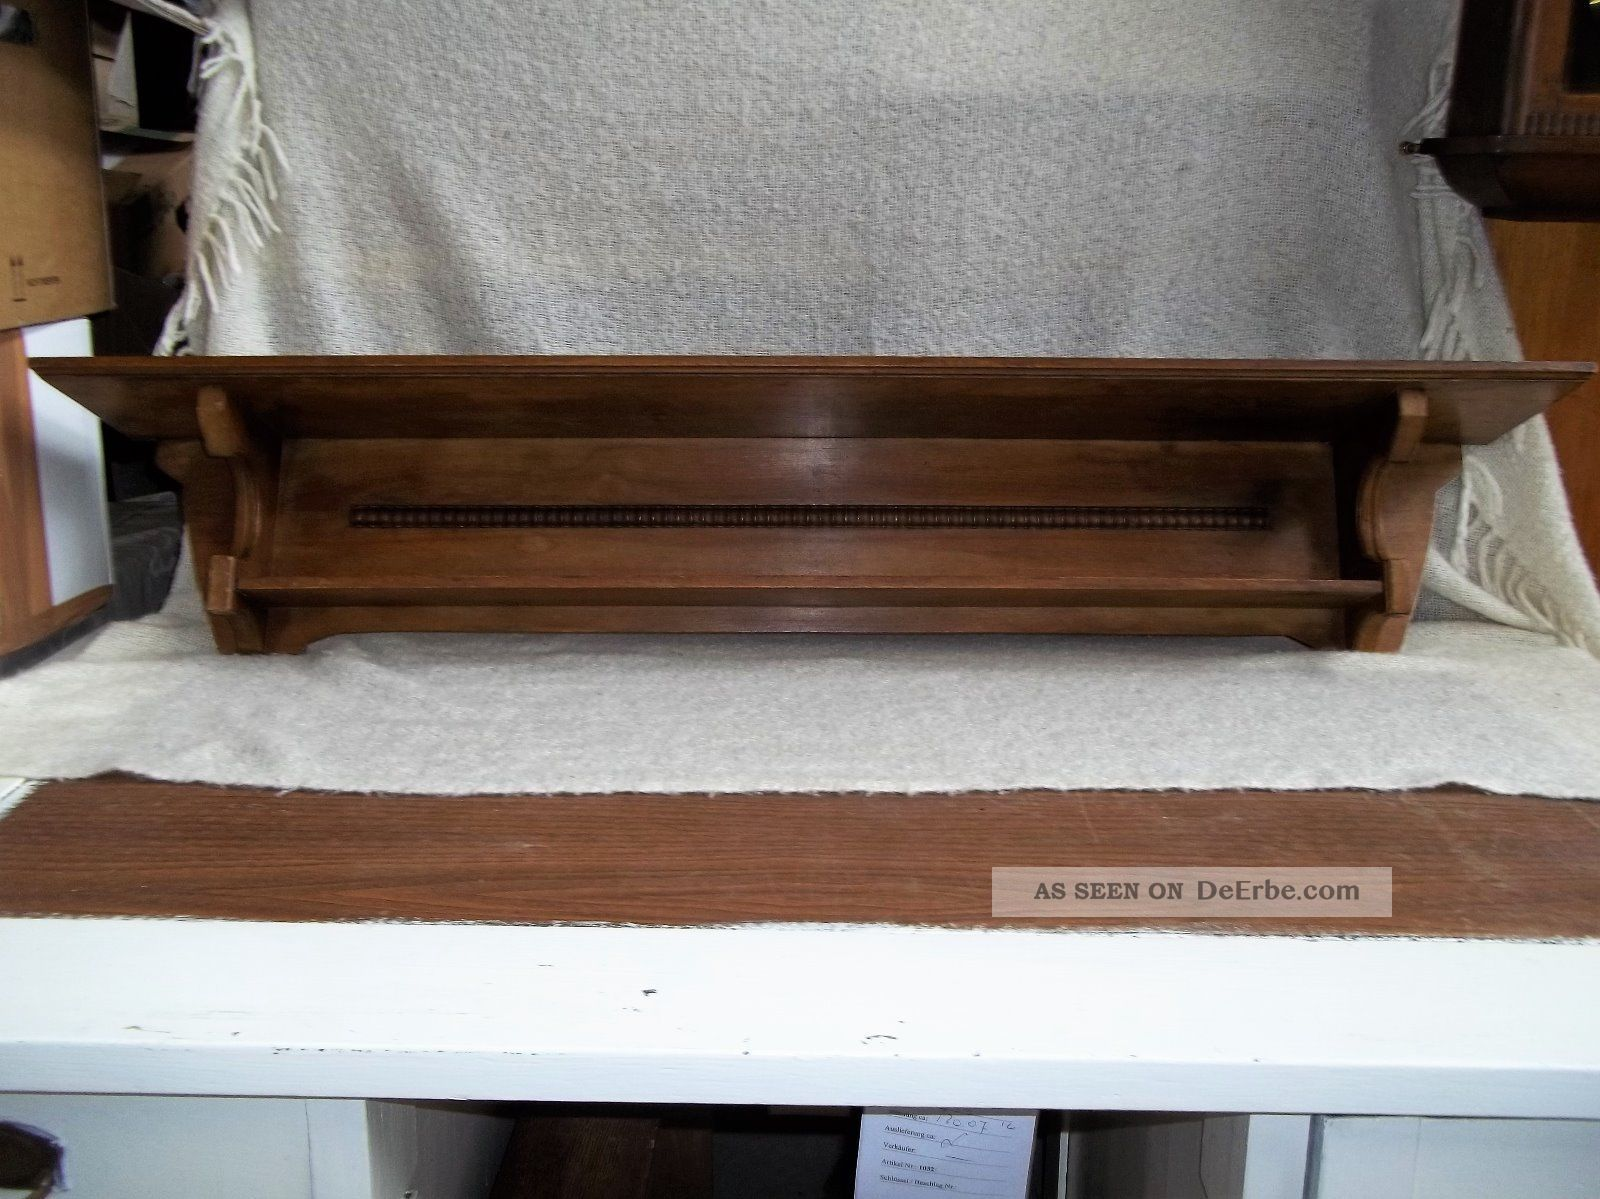 Wandregal Altes Holz Jugendstil Wandregal Wandbord Regal Konsole Ca. Um 1920